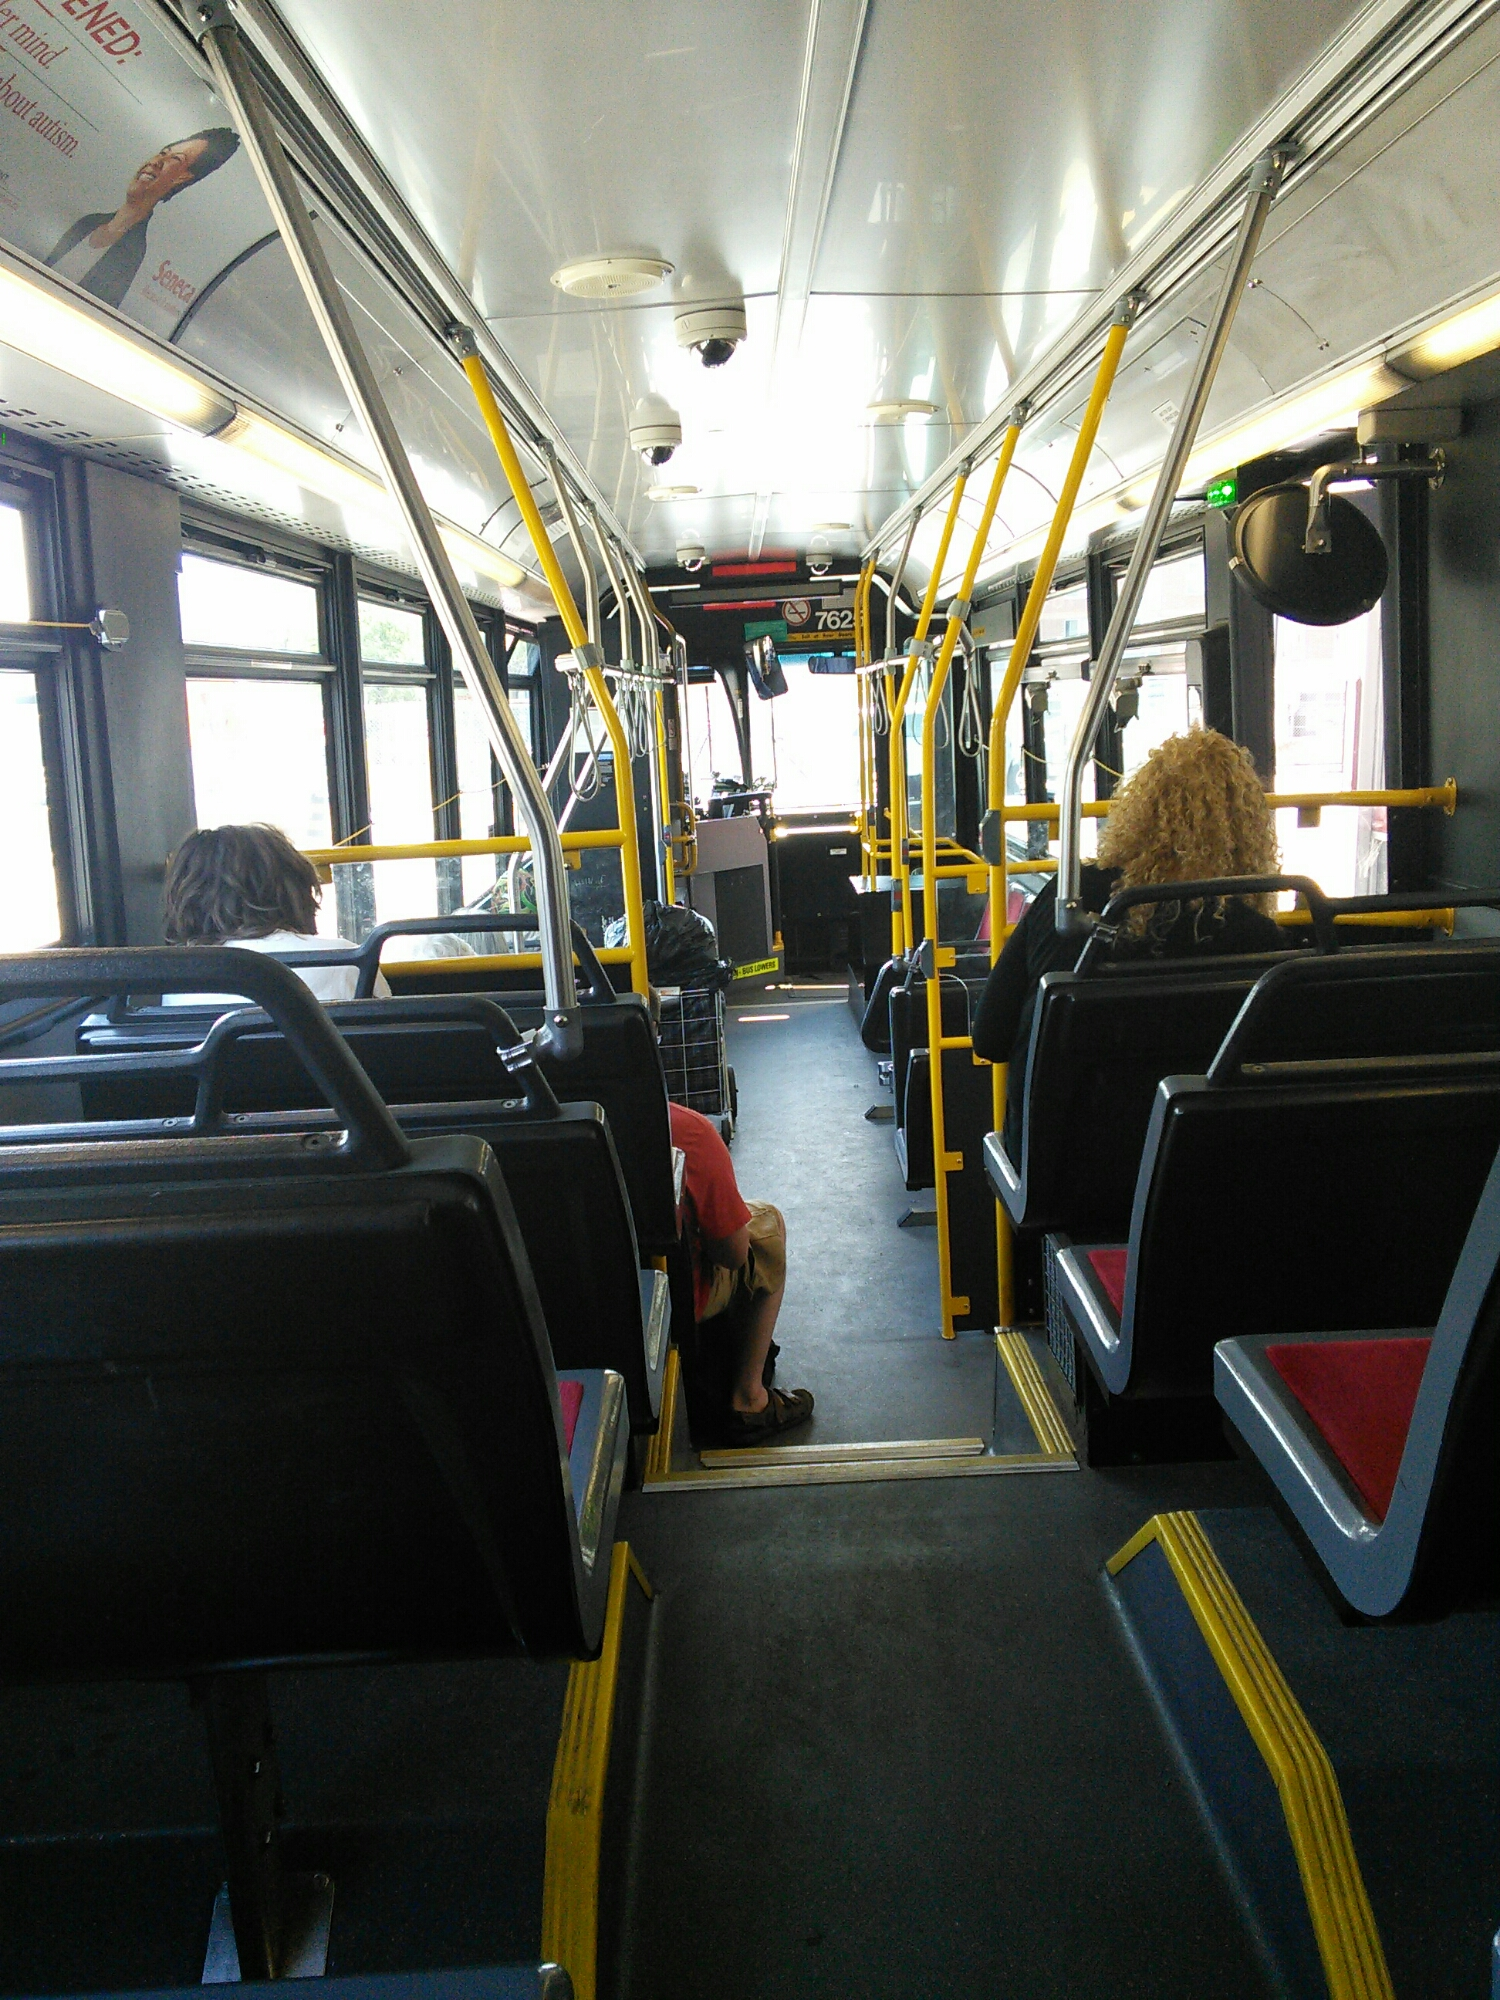 A ramdom shot of transit in TO because I've missed being convenienced